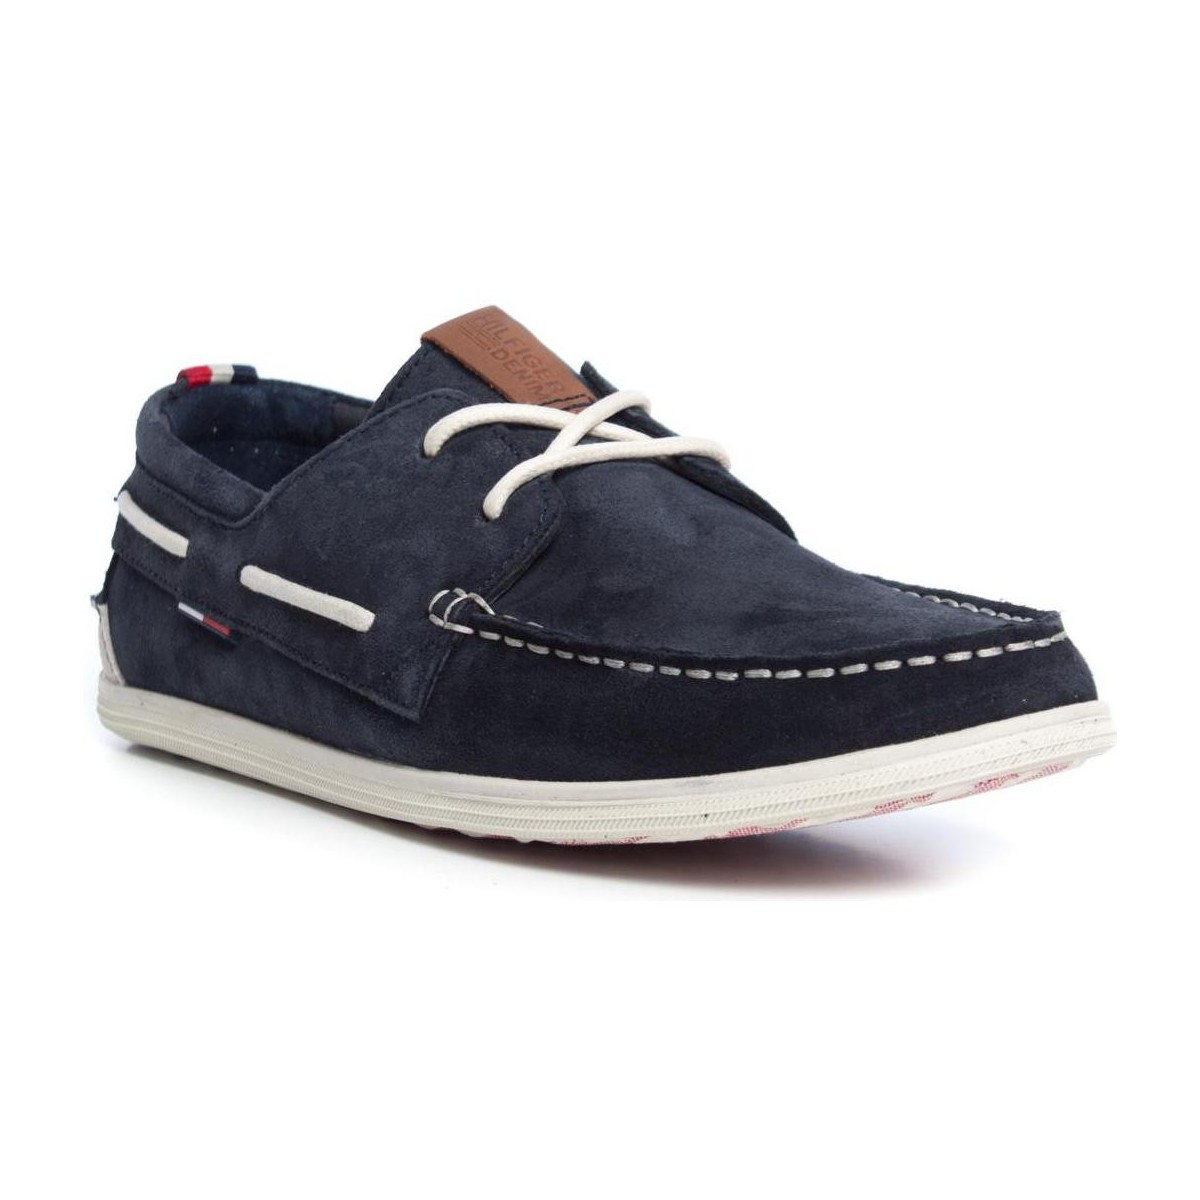 tommy hilfiger m2385iles 1b blue chaussures chaussures bateau homme 64 68. Black Bedroom Furniture Sets. Home Design Ideas